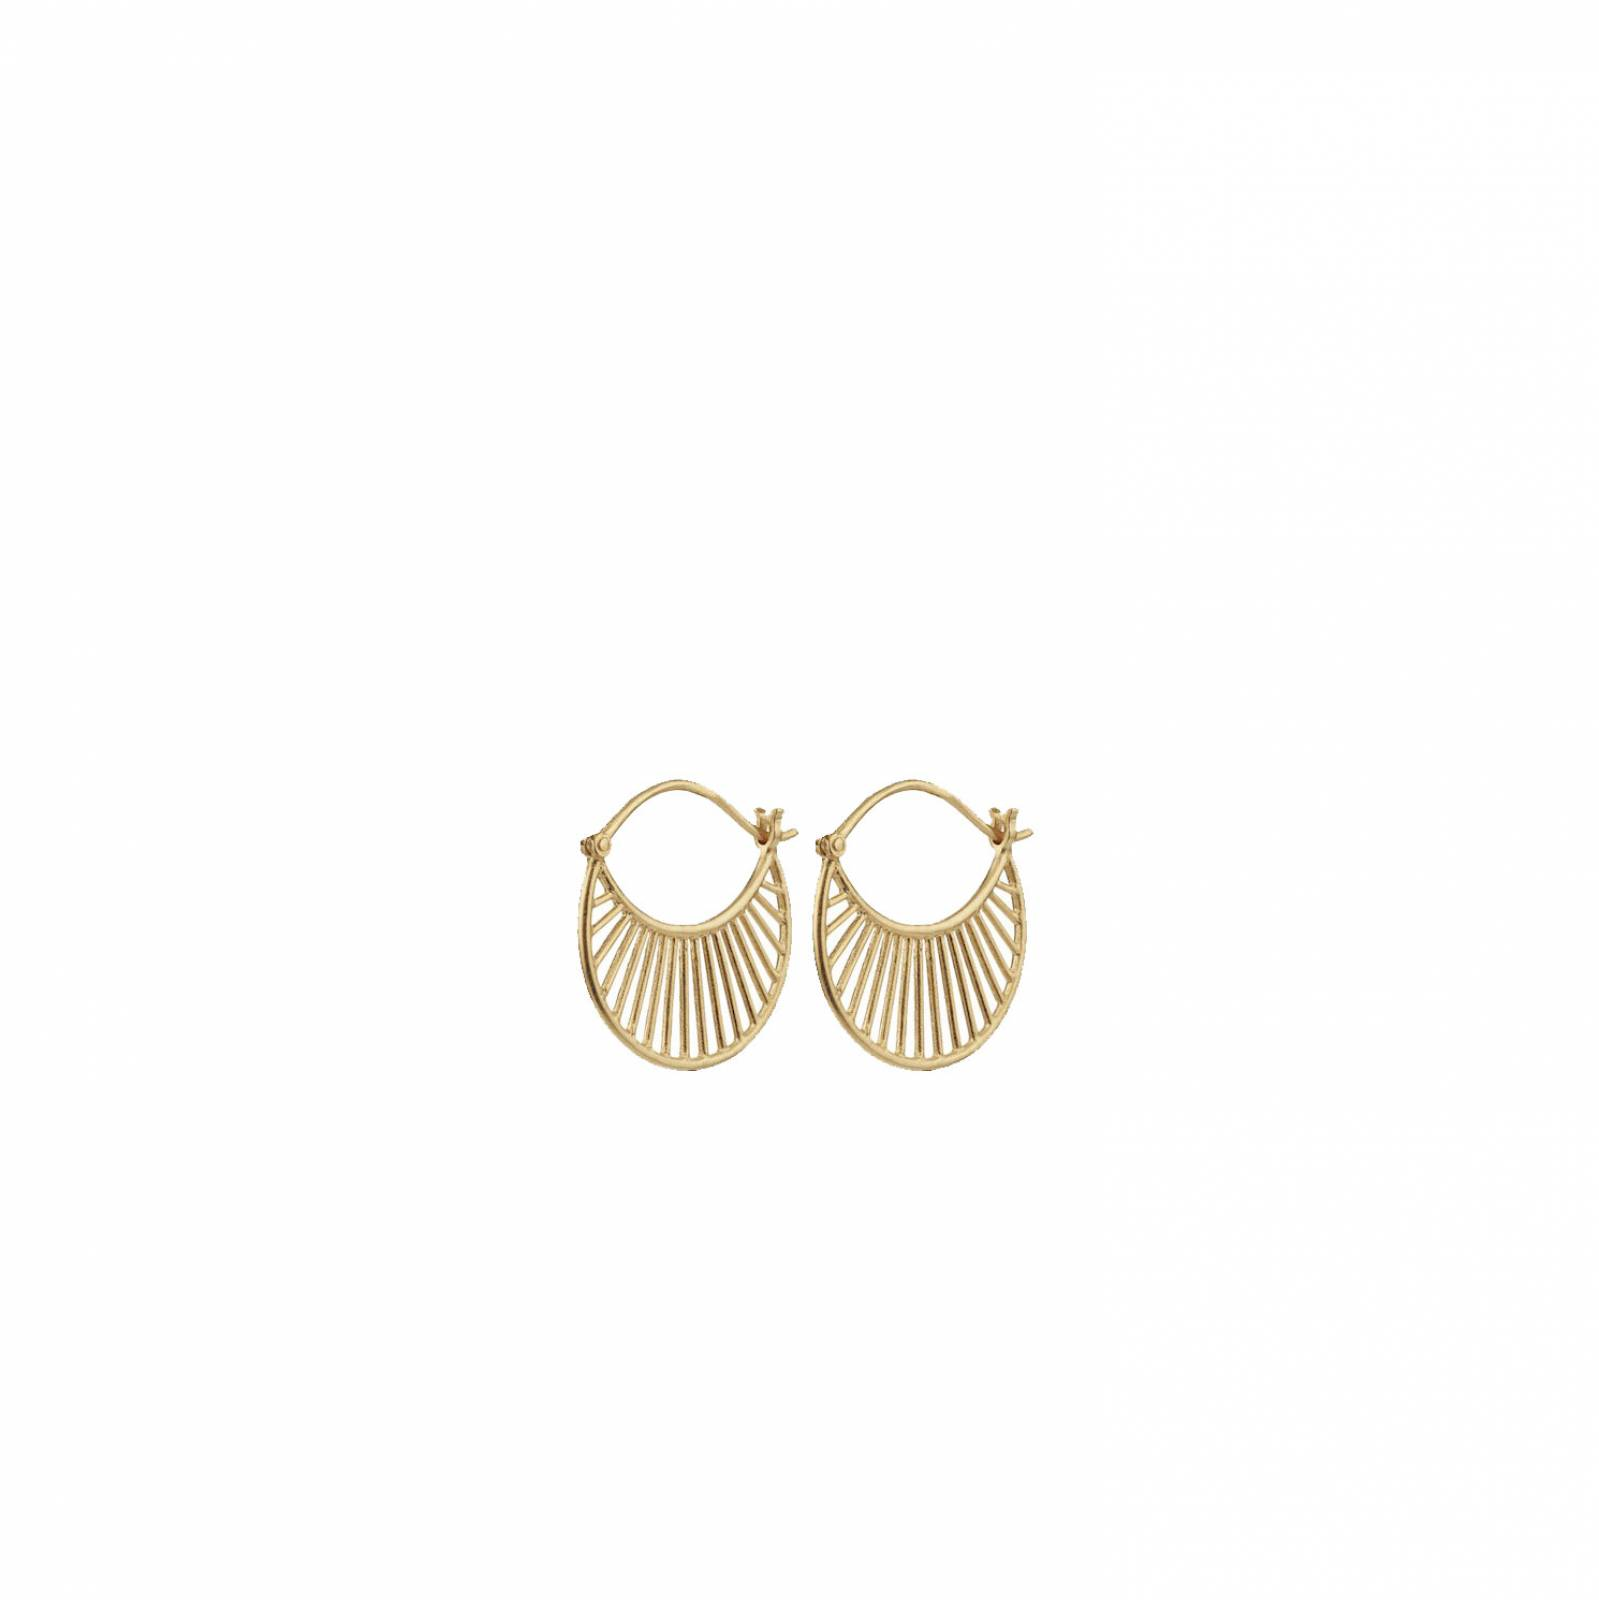 Daylight Hoop Earrings In Gold By Pernille Corydon